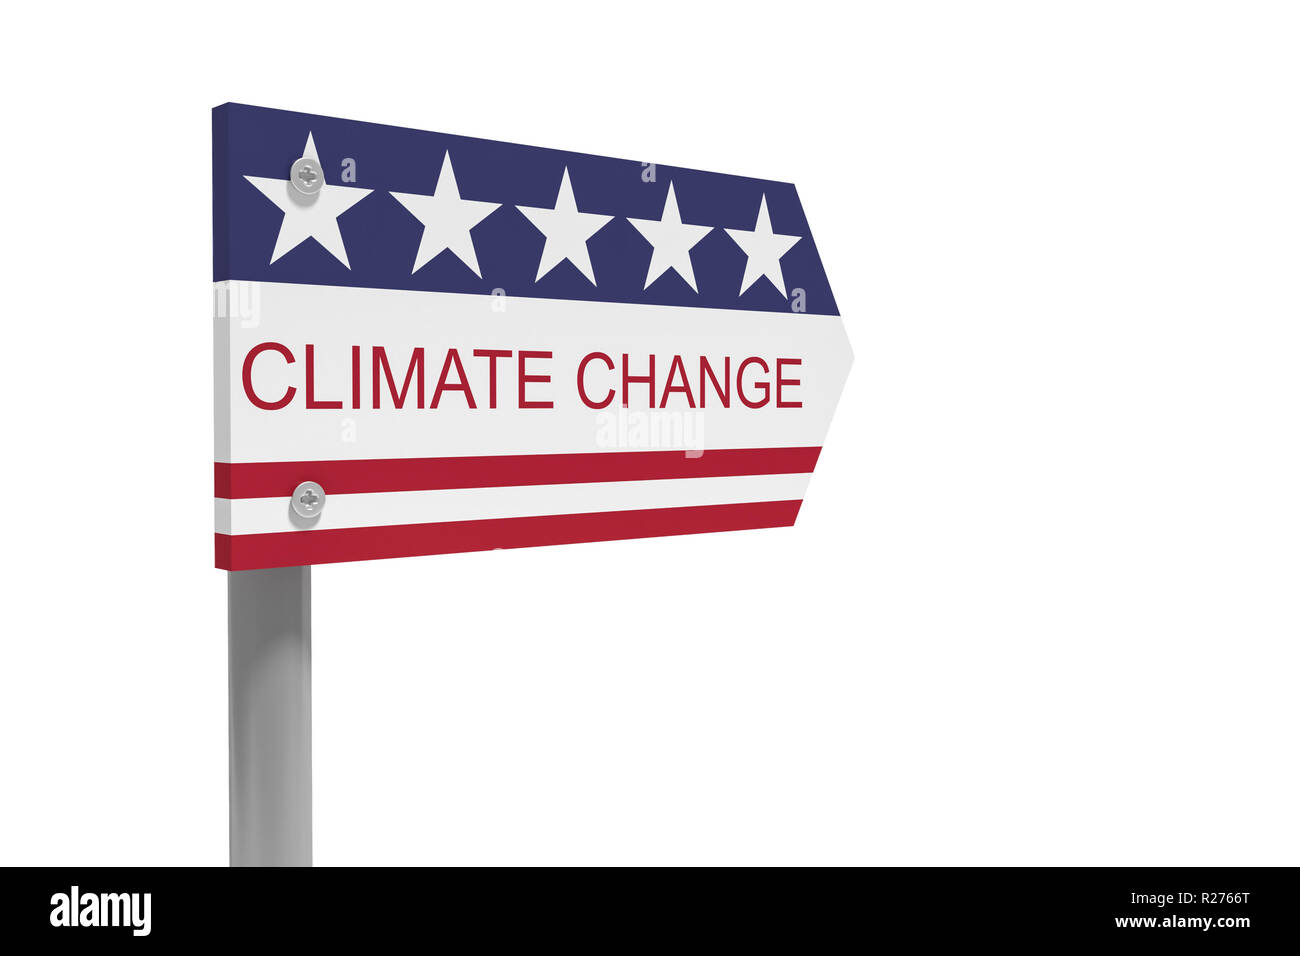 USA Politics Environmental Protection Concept: Climate Change Direction Sign With US Flag, 3d illustration isolated on white background - Stock Image